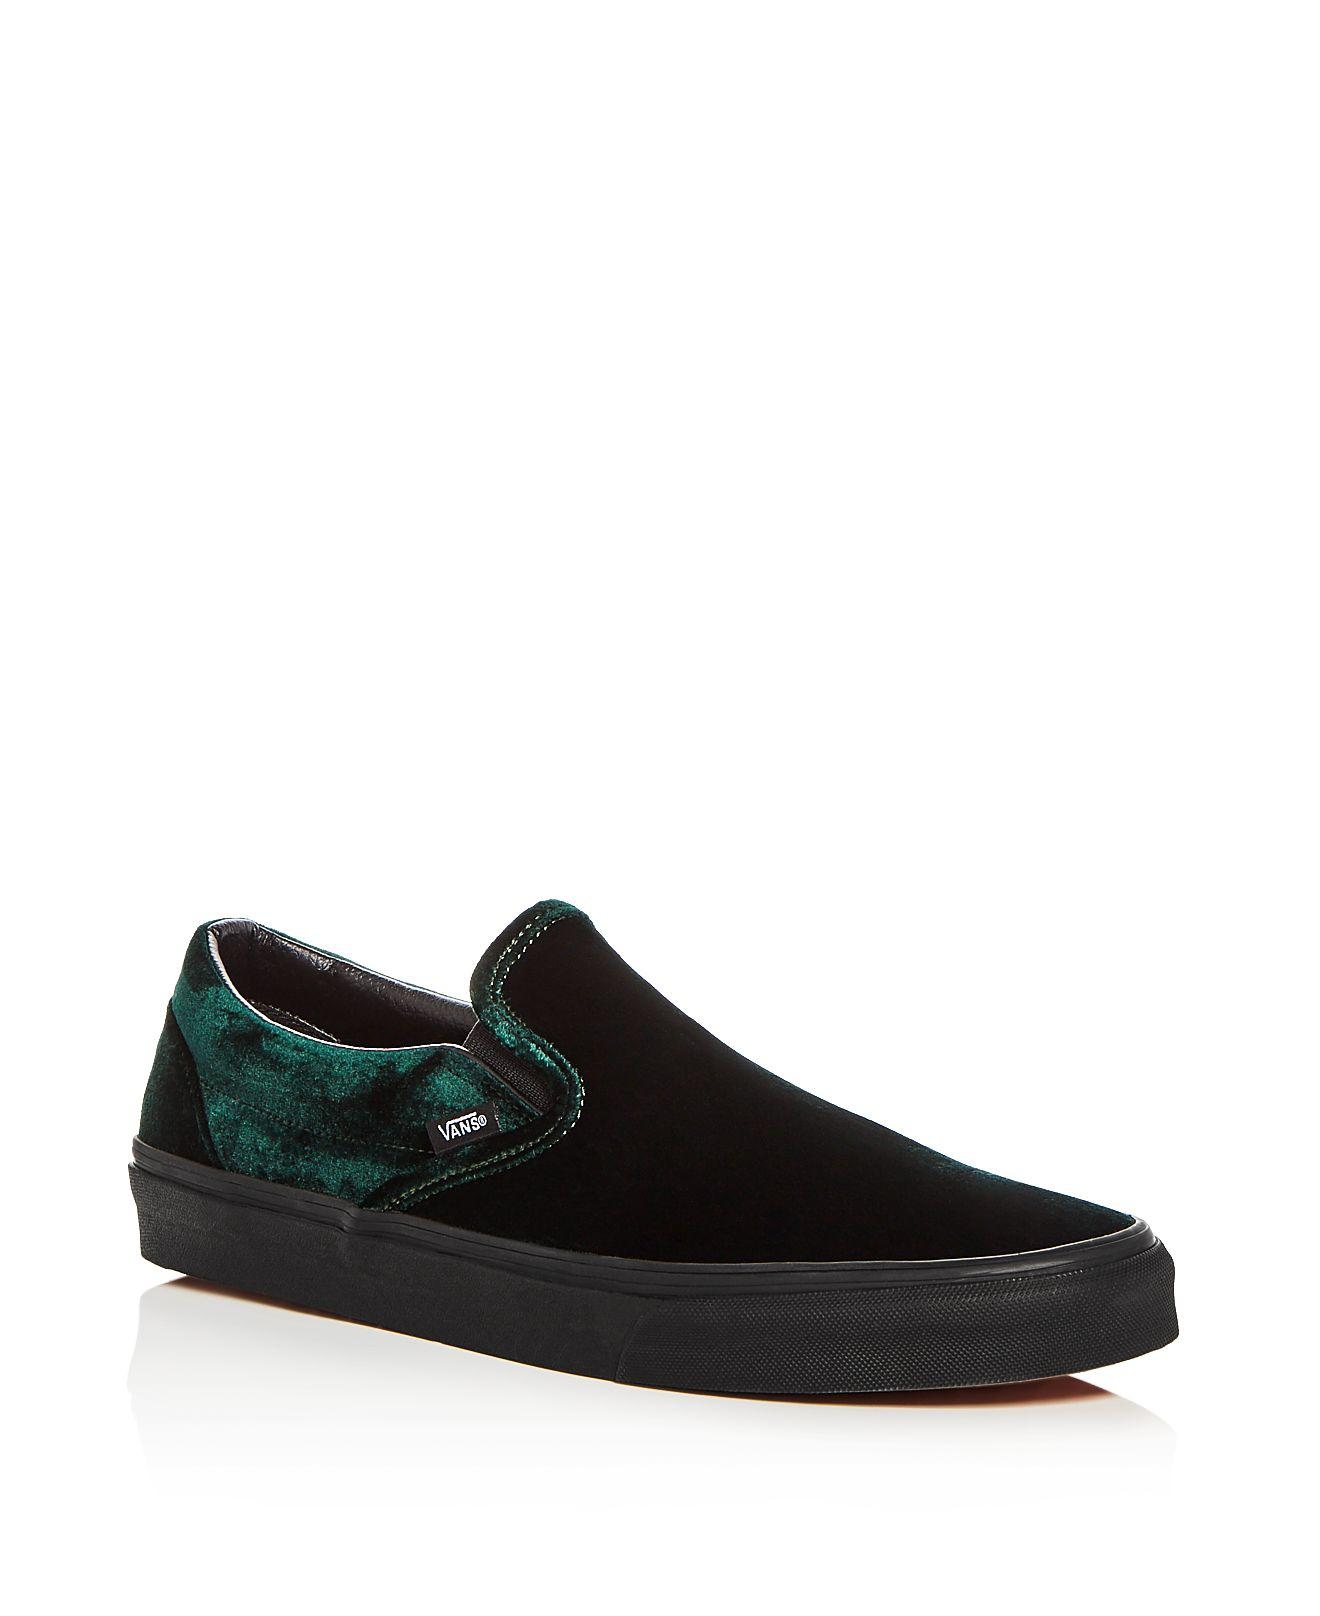 fc4379fa0653 Lyst - Vans Men s Classic Velvet Slip-on Sneakers in Green for Men